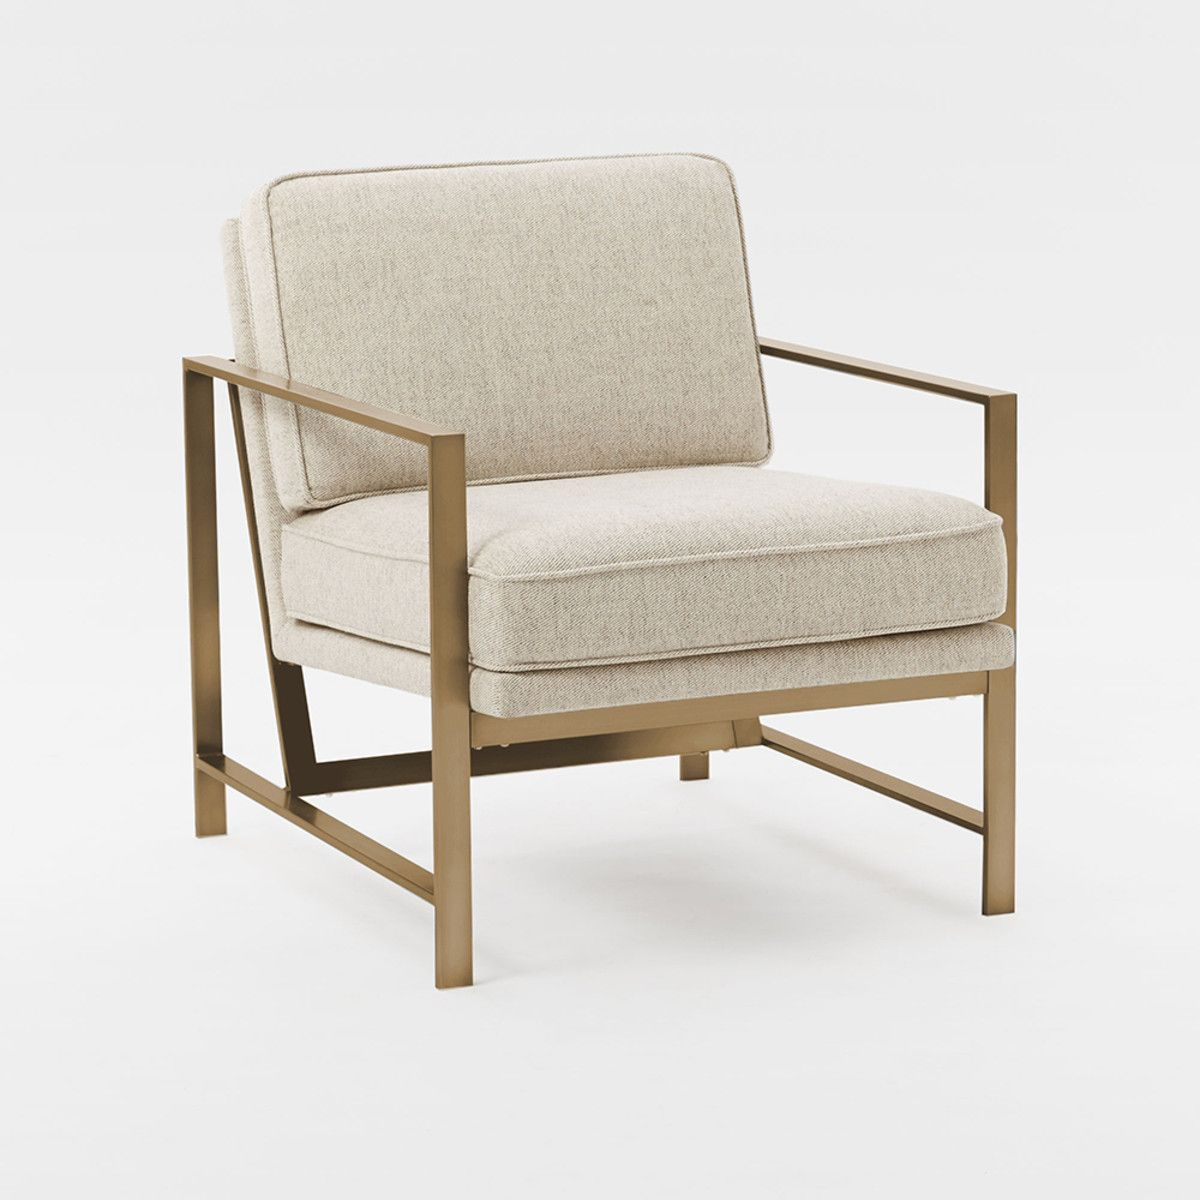 west elm outdoor furniture. West Elm - Metal Frame Upholstered Chair Stone Outdoor Furniture